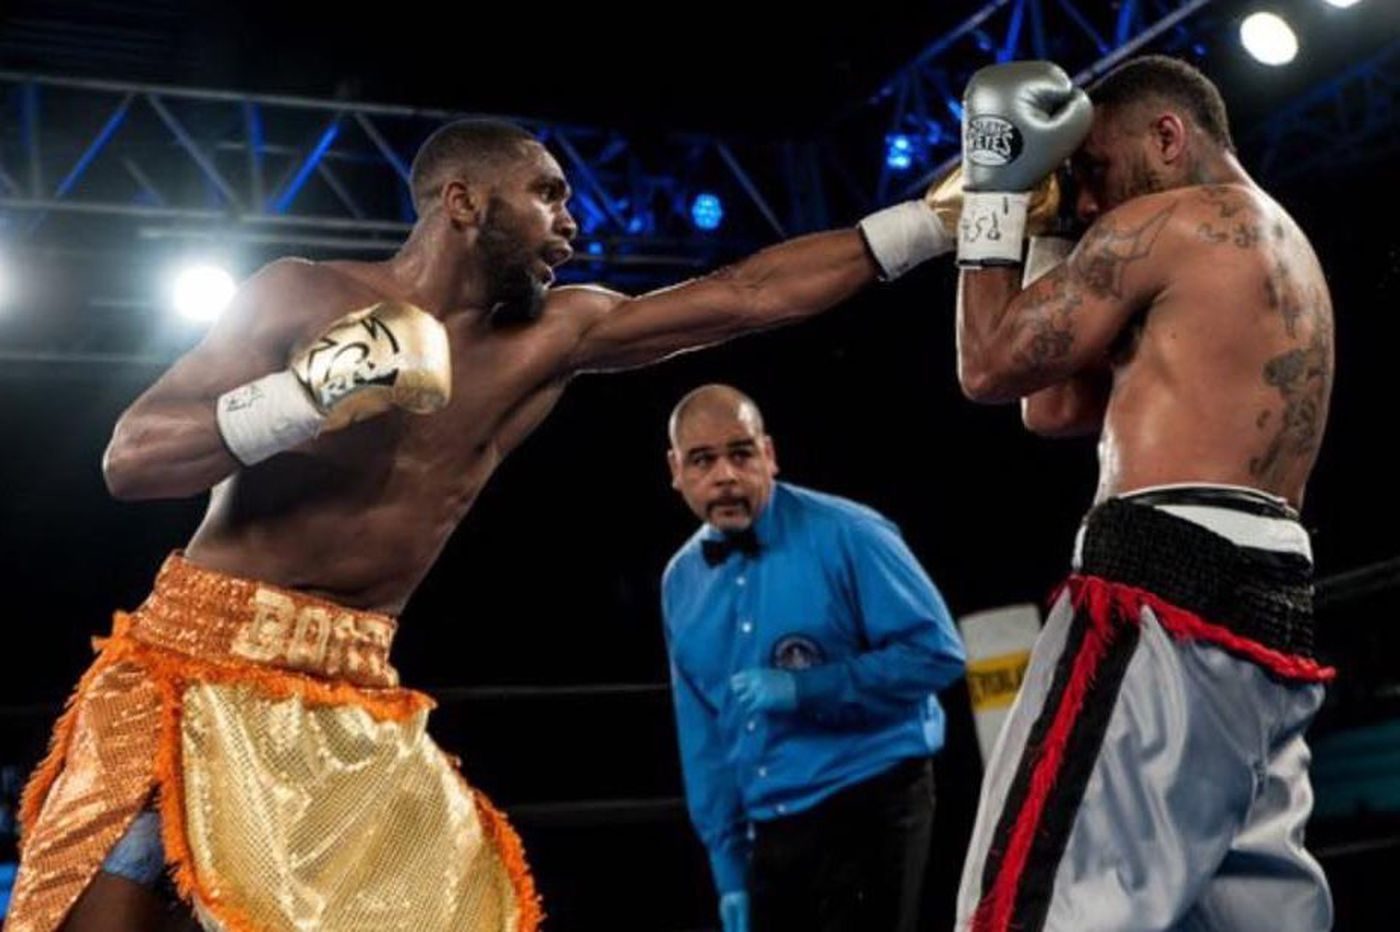 Rising Philly welterweight boxer Jaron Ennis to step up in competition in November